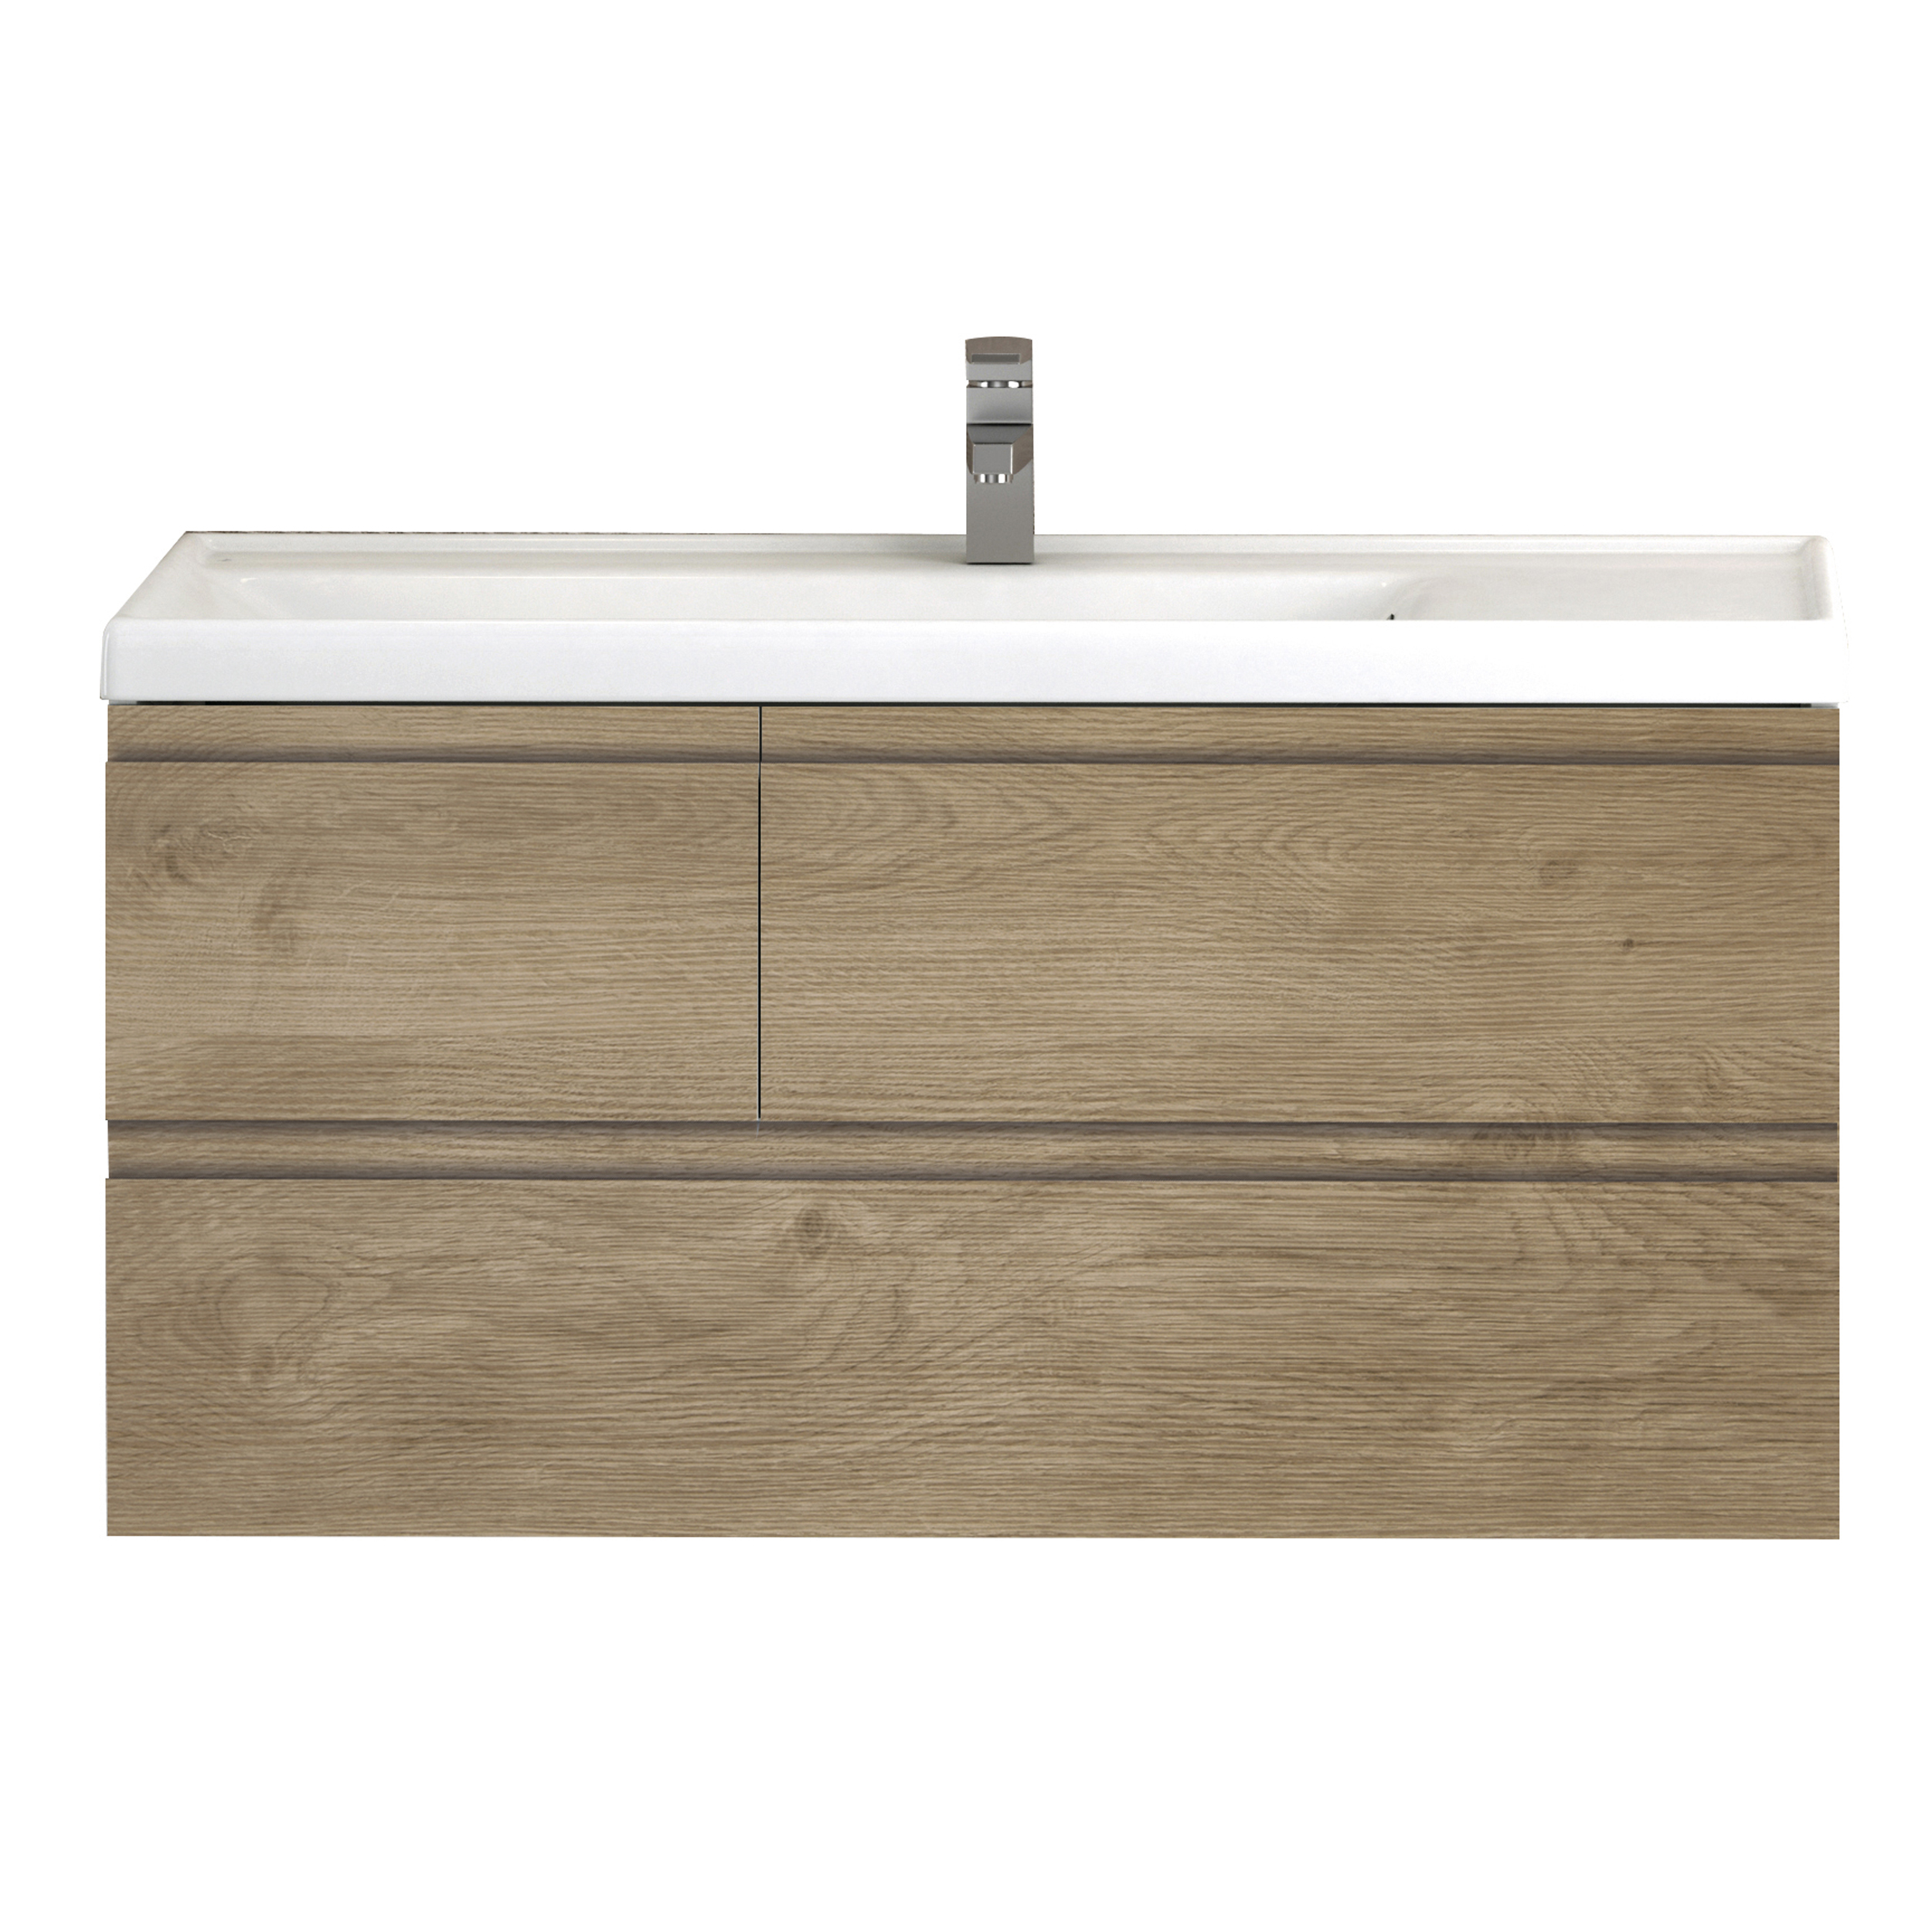 "EVVN542 32OAK A Main - Eviva Roxy 32"" Natural Oak Vanity with Porcelain sink"